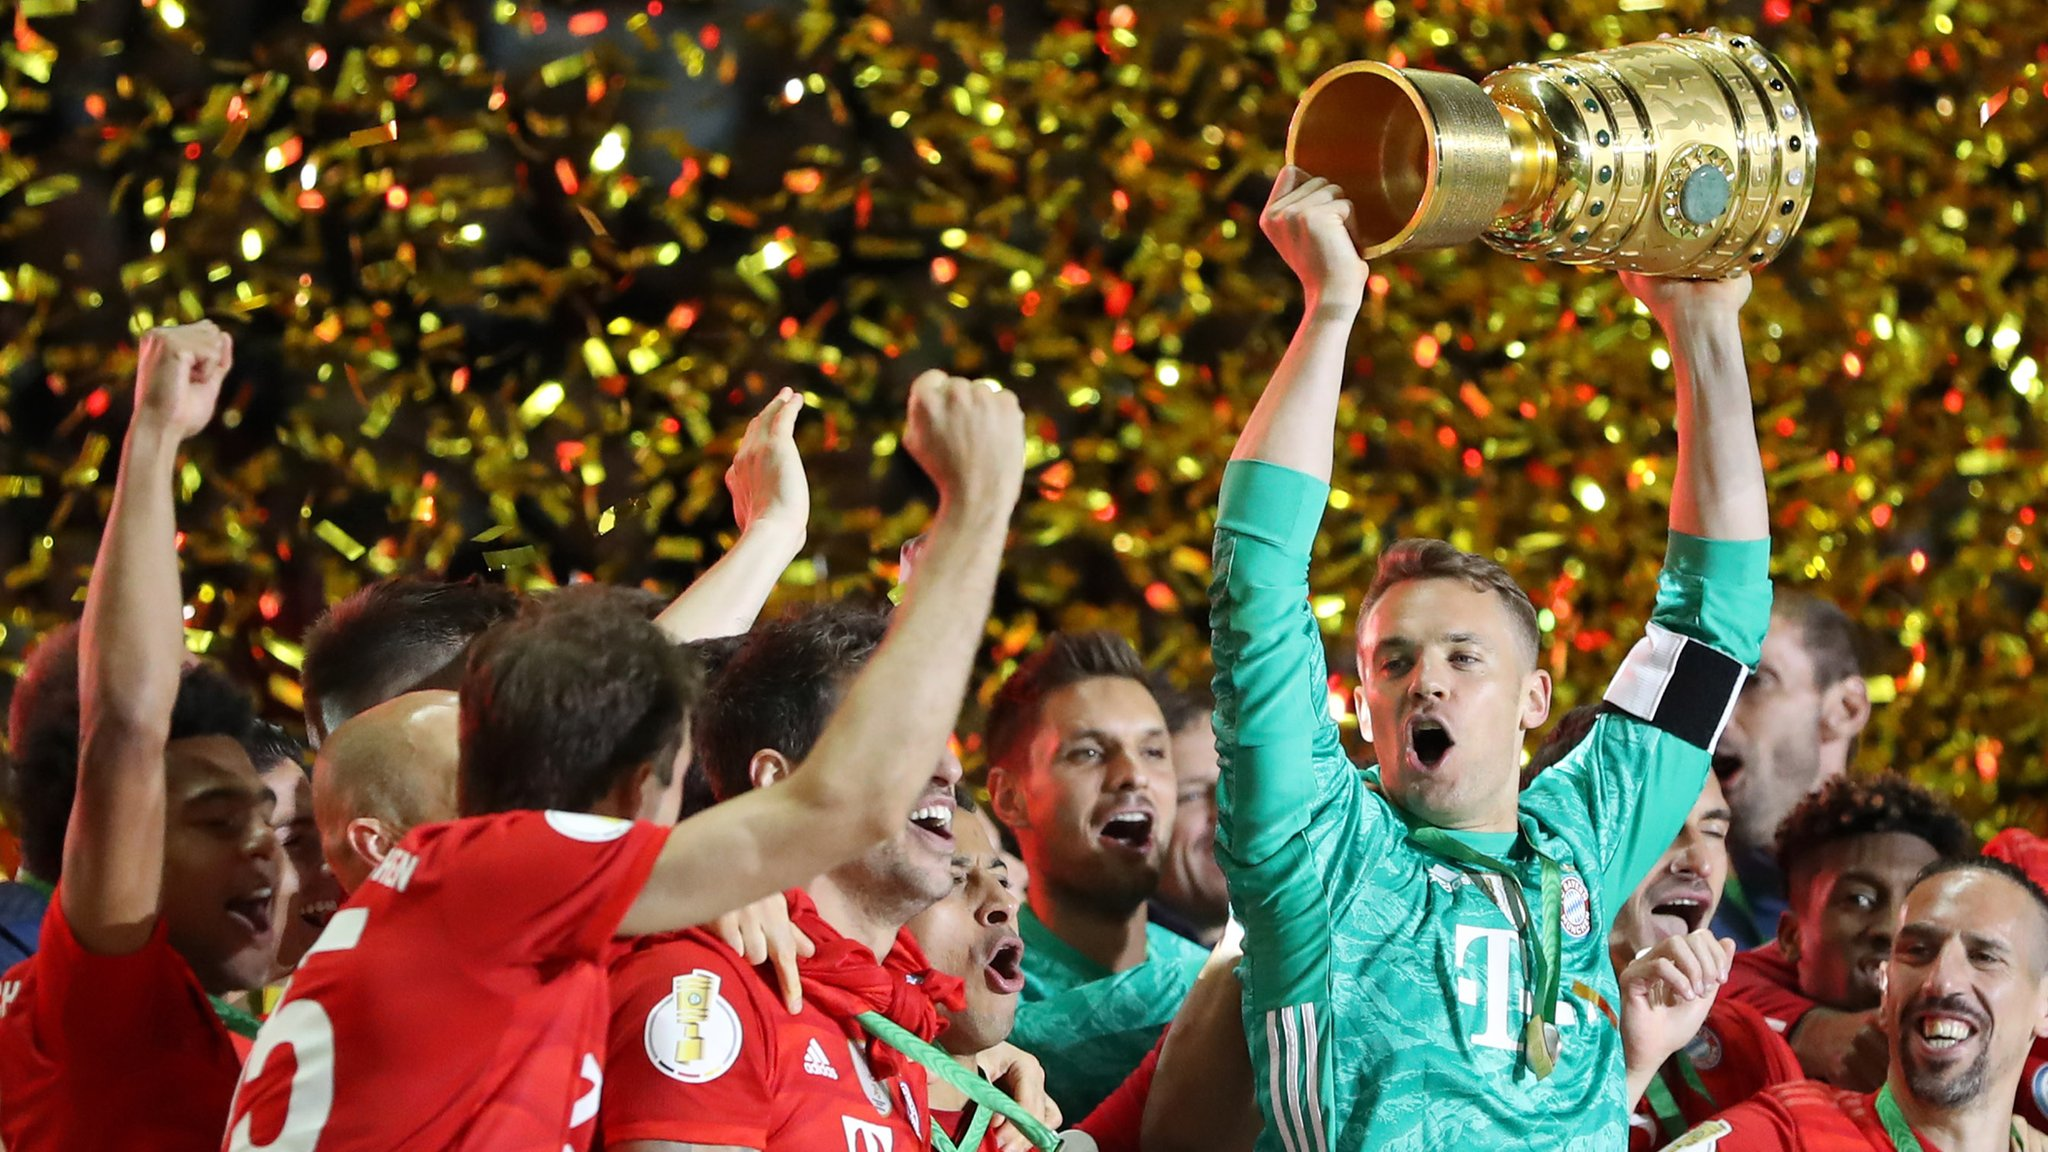 DFB Pokal final: Bayern clinch double with 3-0 win over Leipzig